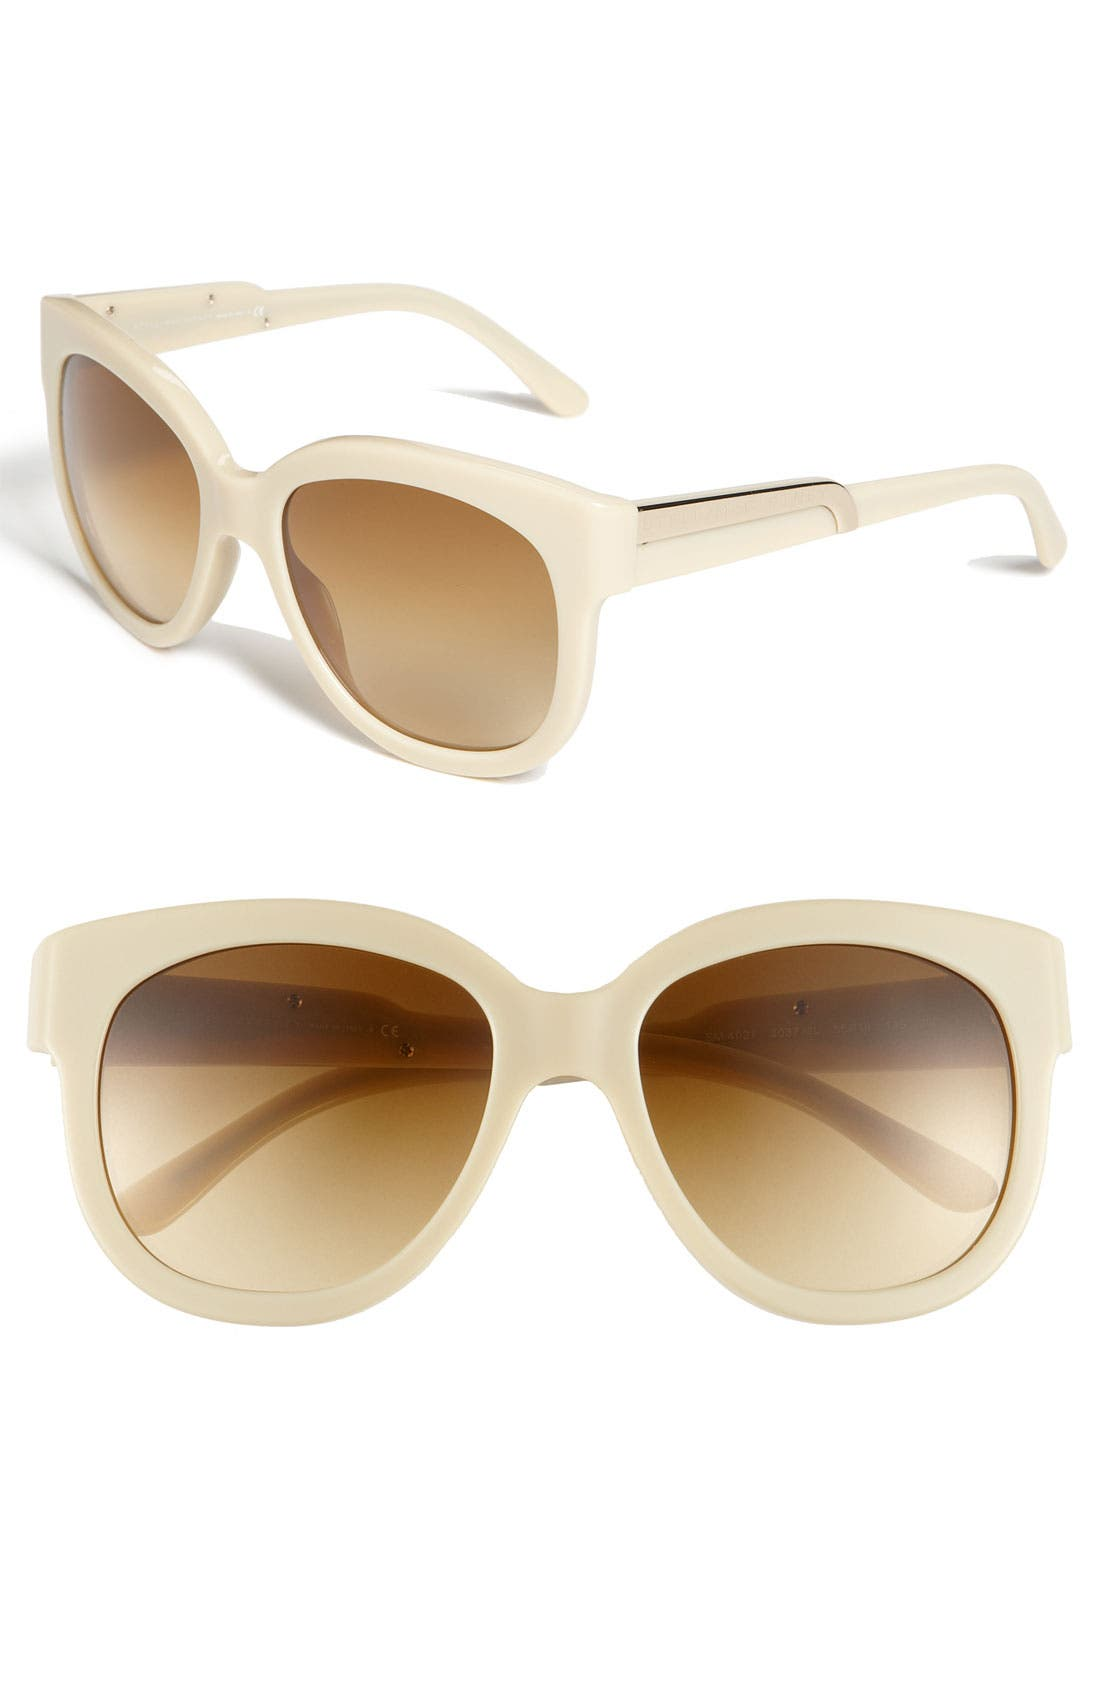 Main Image - Stella McCartney 55mm Oversized Cat's-Eye Sunglasses